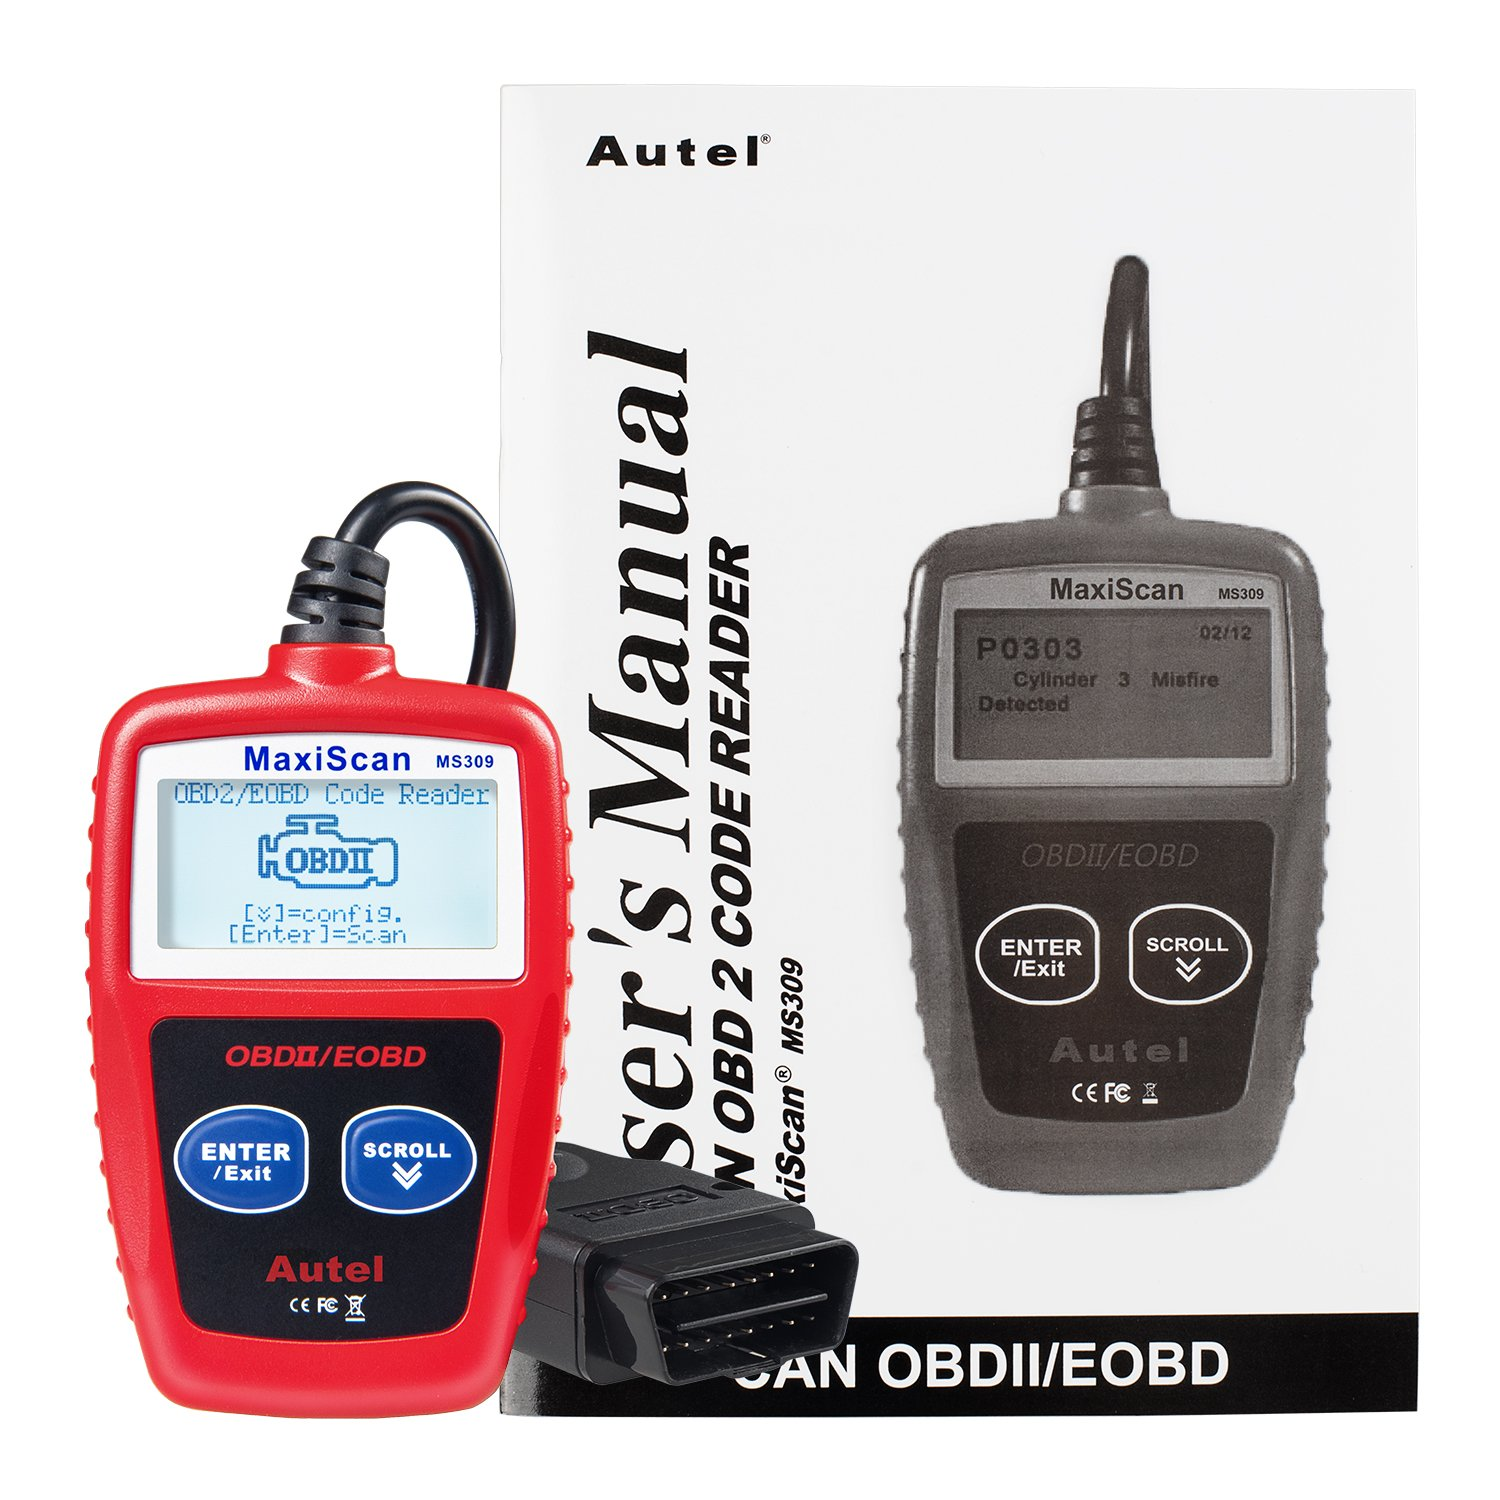 Autel Maxiscan Ms309 Can Obdii Diagnostic Tool Obd2 Two Simple Relay Based Motorcycle Alarms Scanner Scan For Check Engine Light Automotive